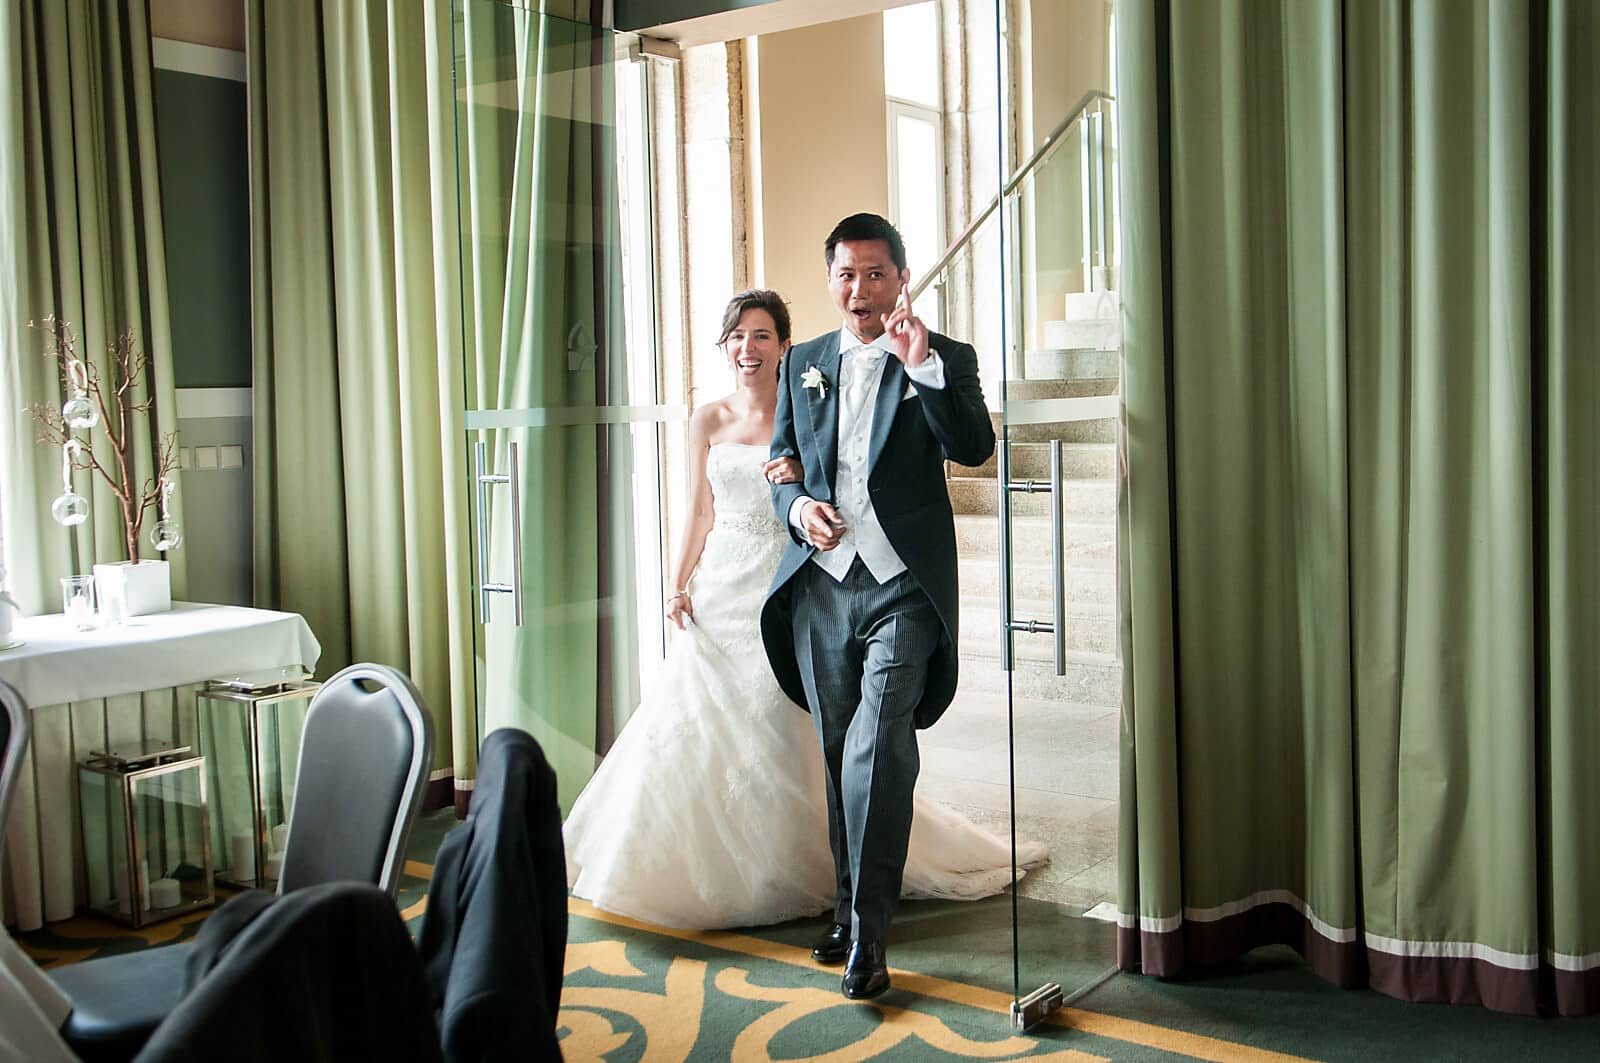 Bride and groom cheer as they enter their wedding reception